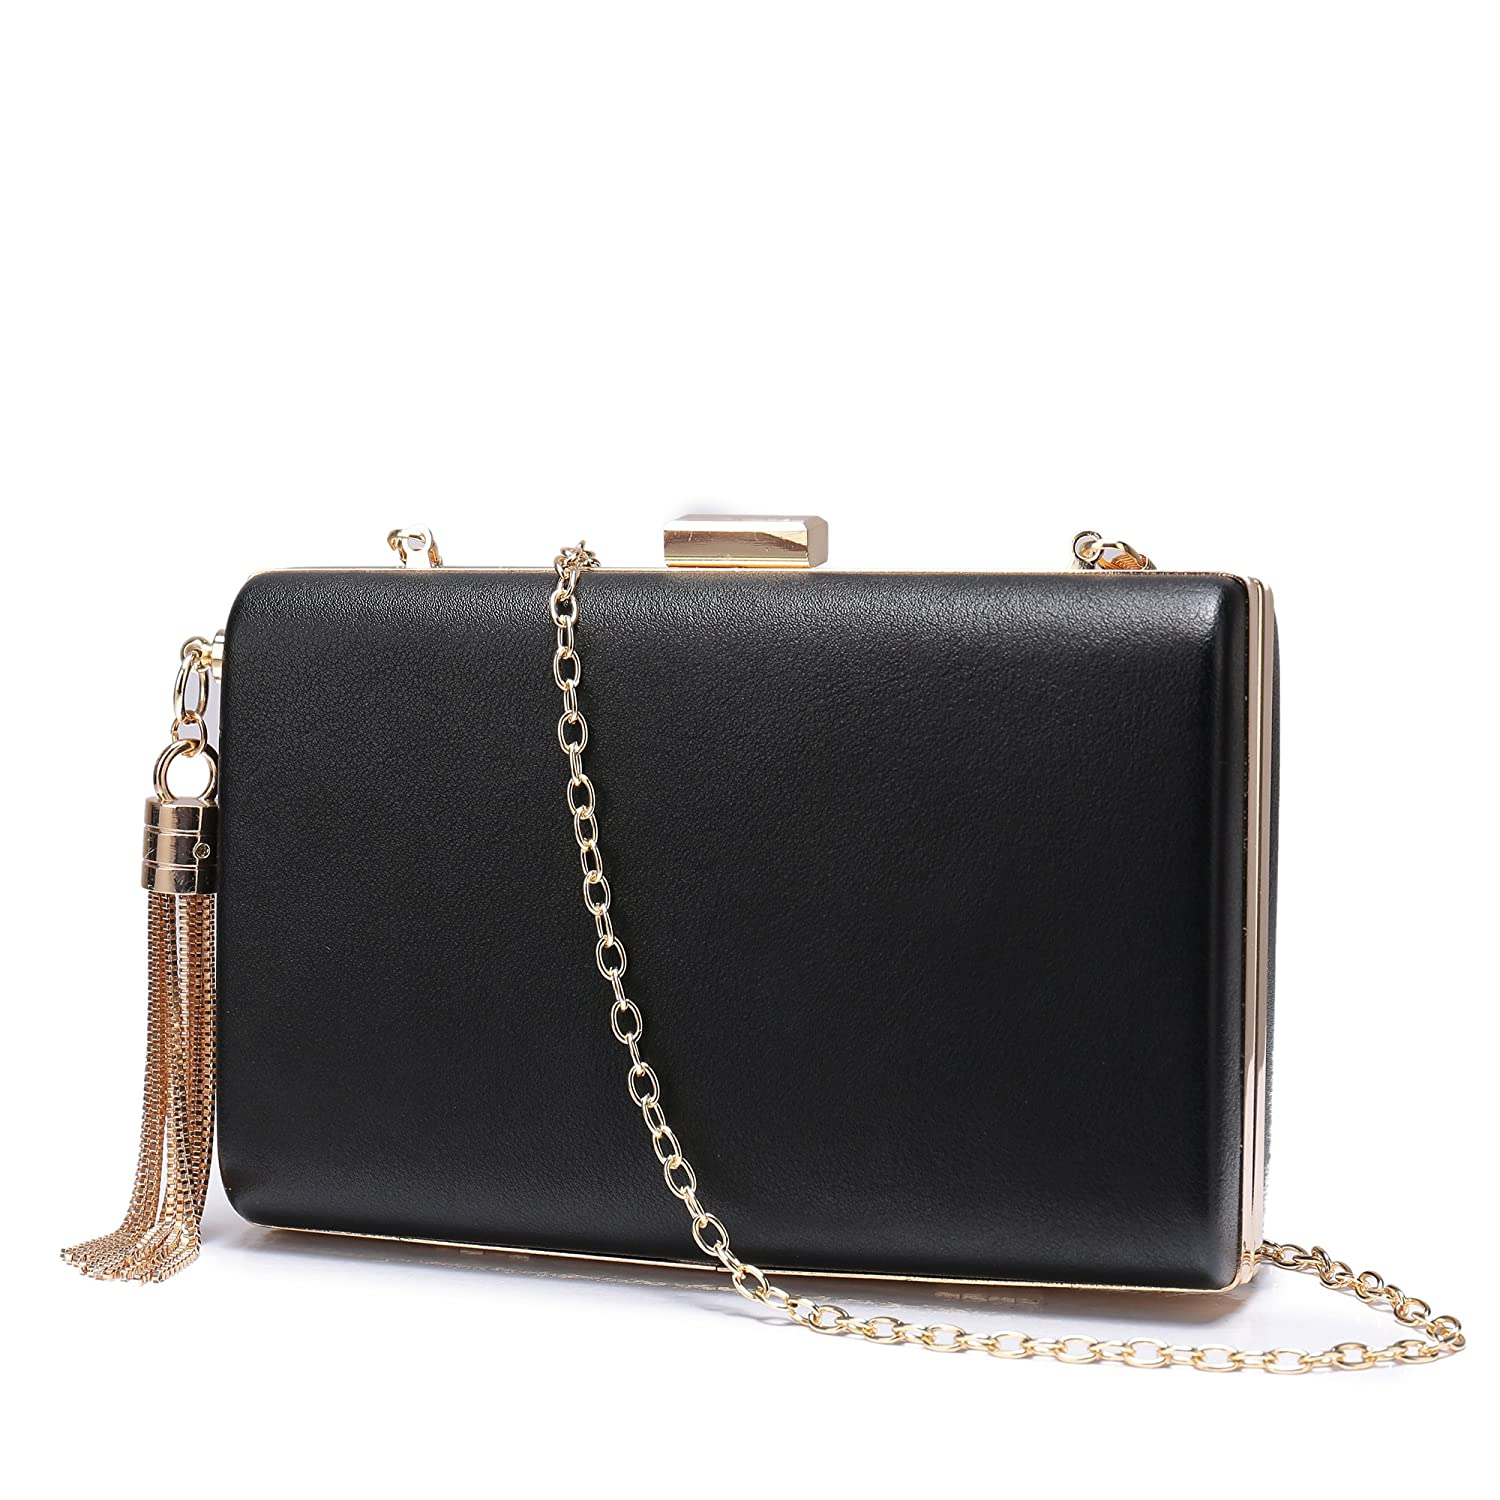 e97d96bc5f Leather Evening Clutch Handbag Clutch Purse Prom for Cocktail Wedding Women  Black  Handbags  Amazon.com